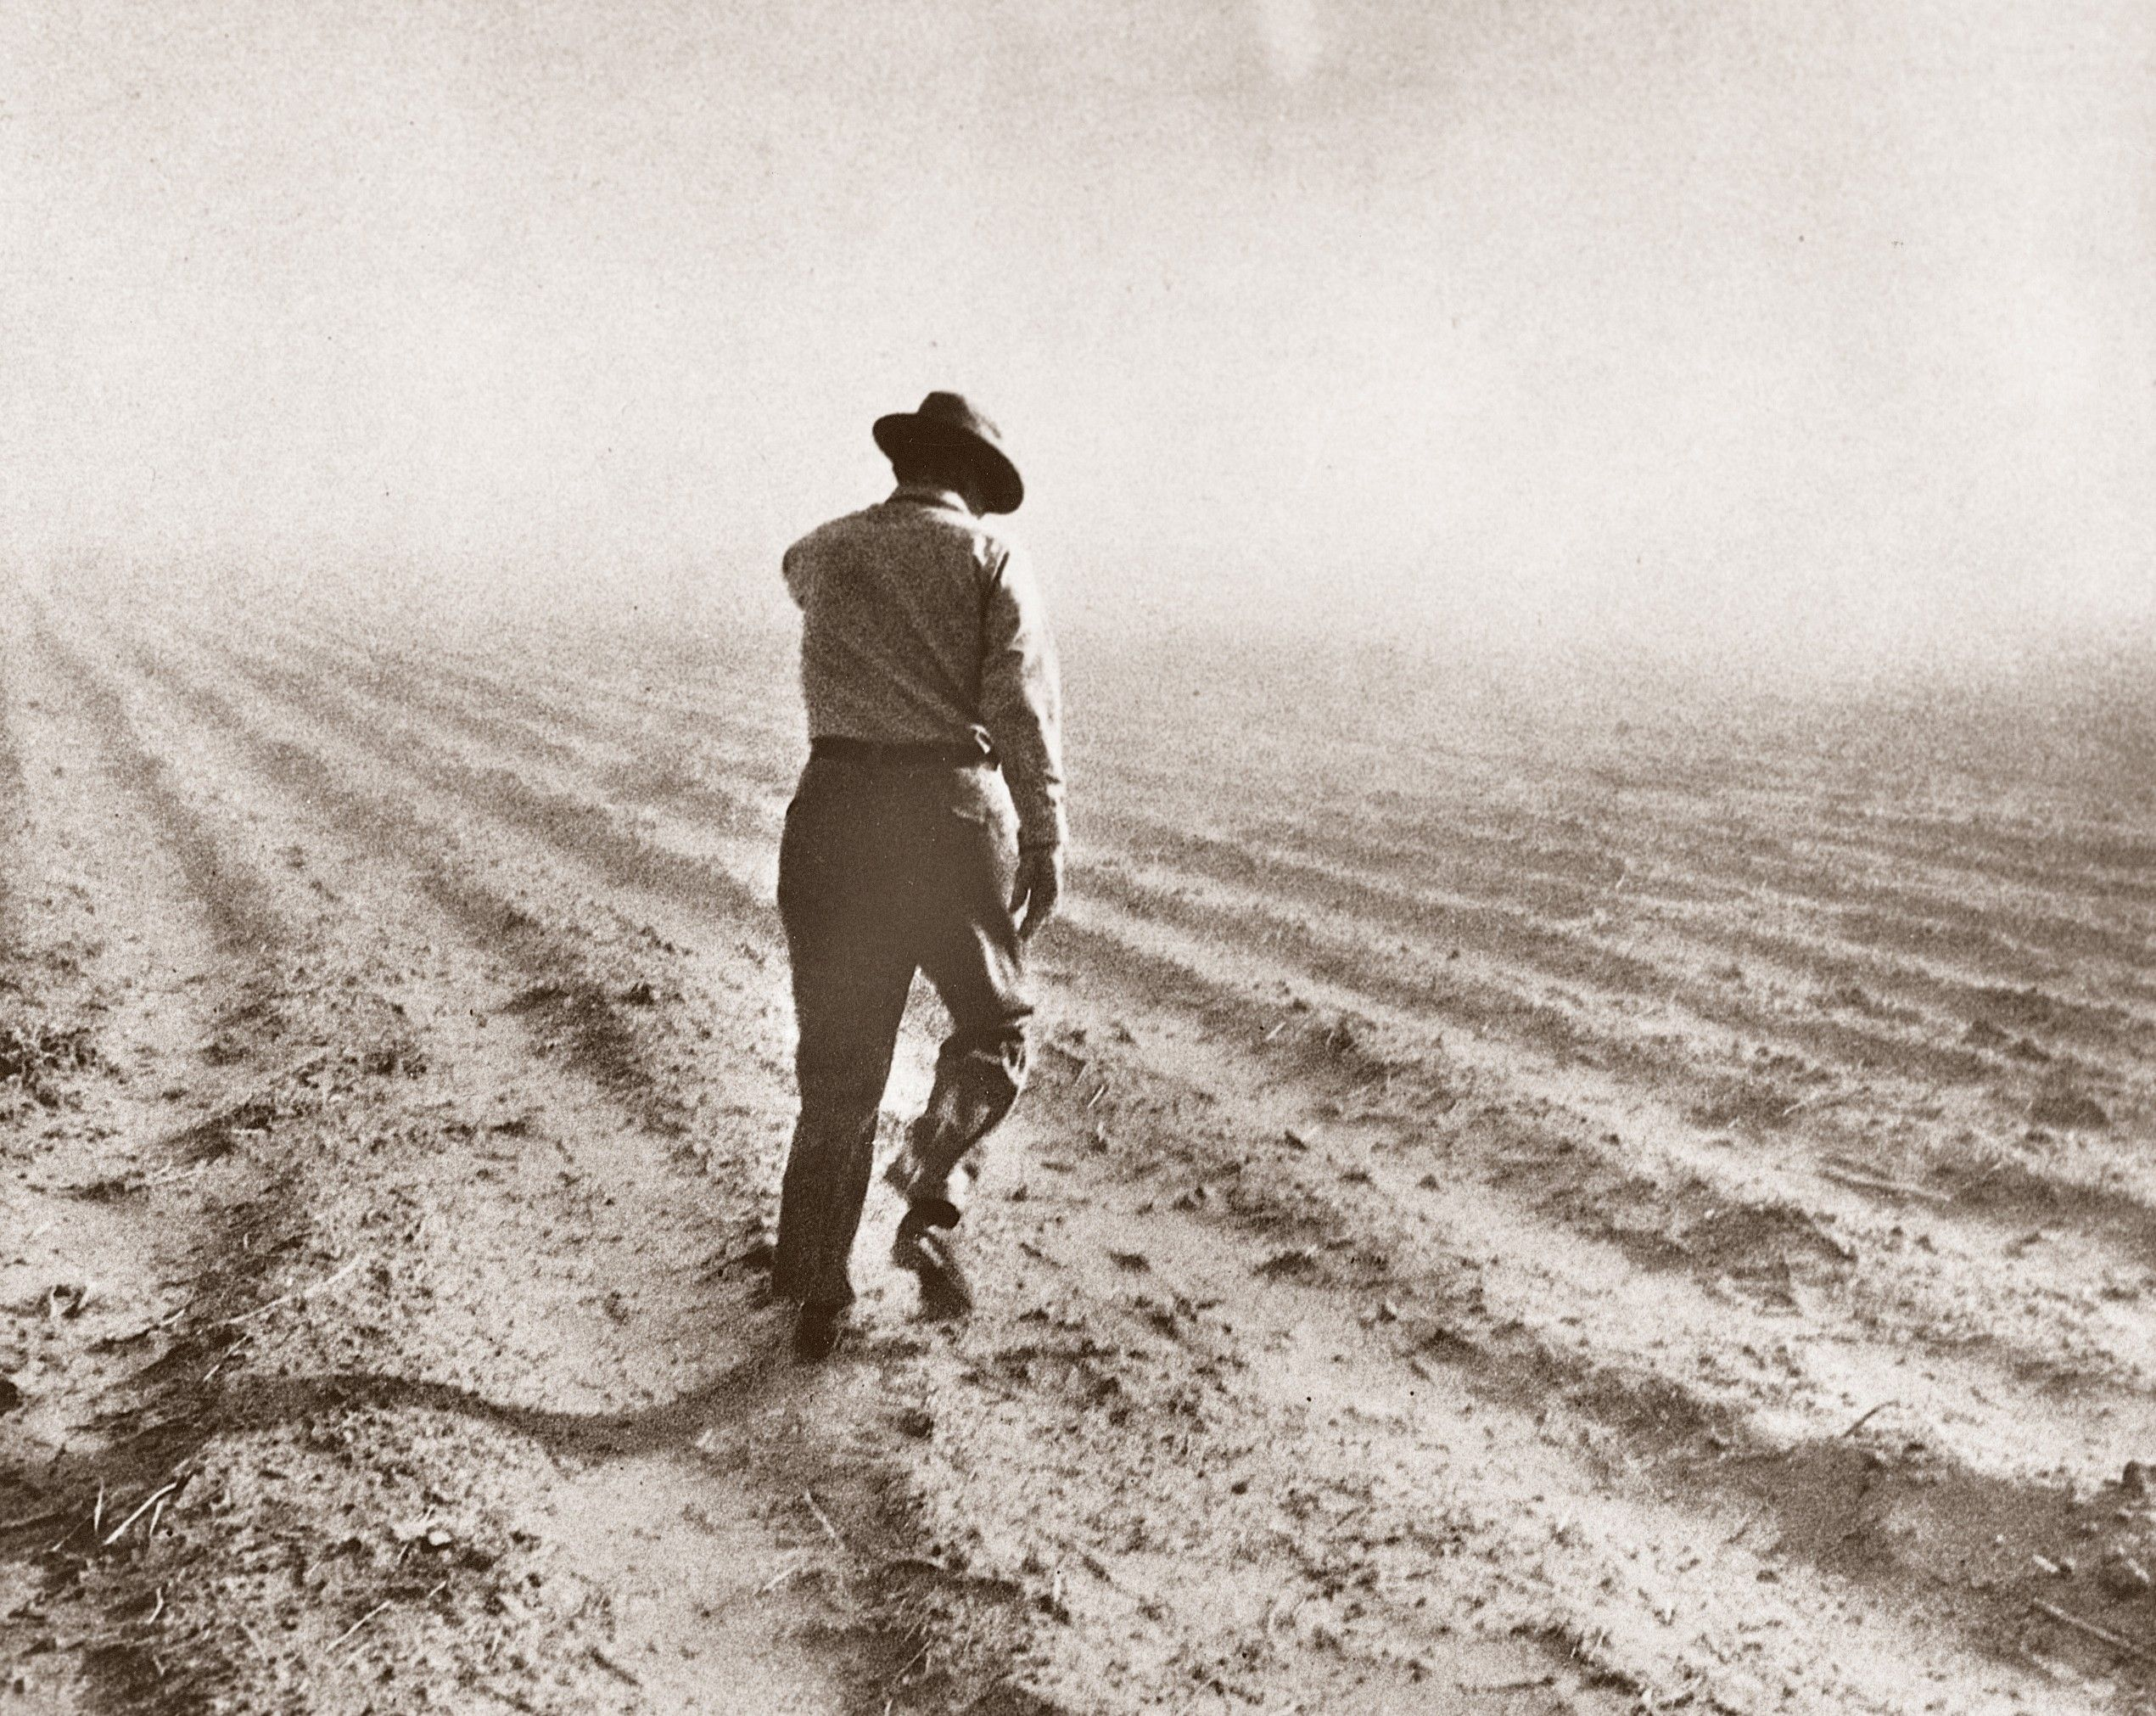 Ezra Taft Benson walking and inspecting a field during a drought.